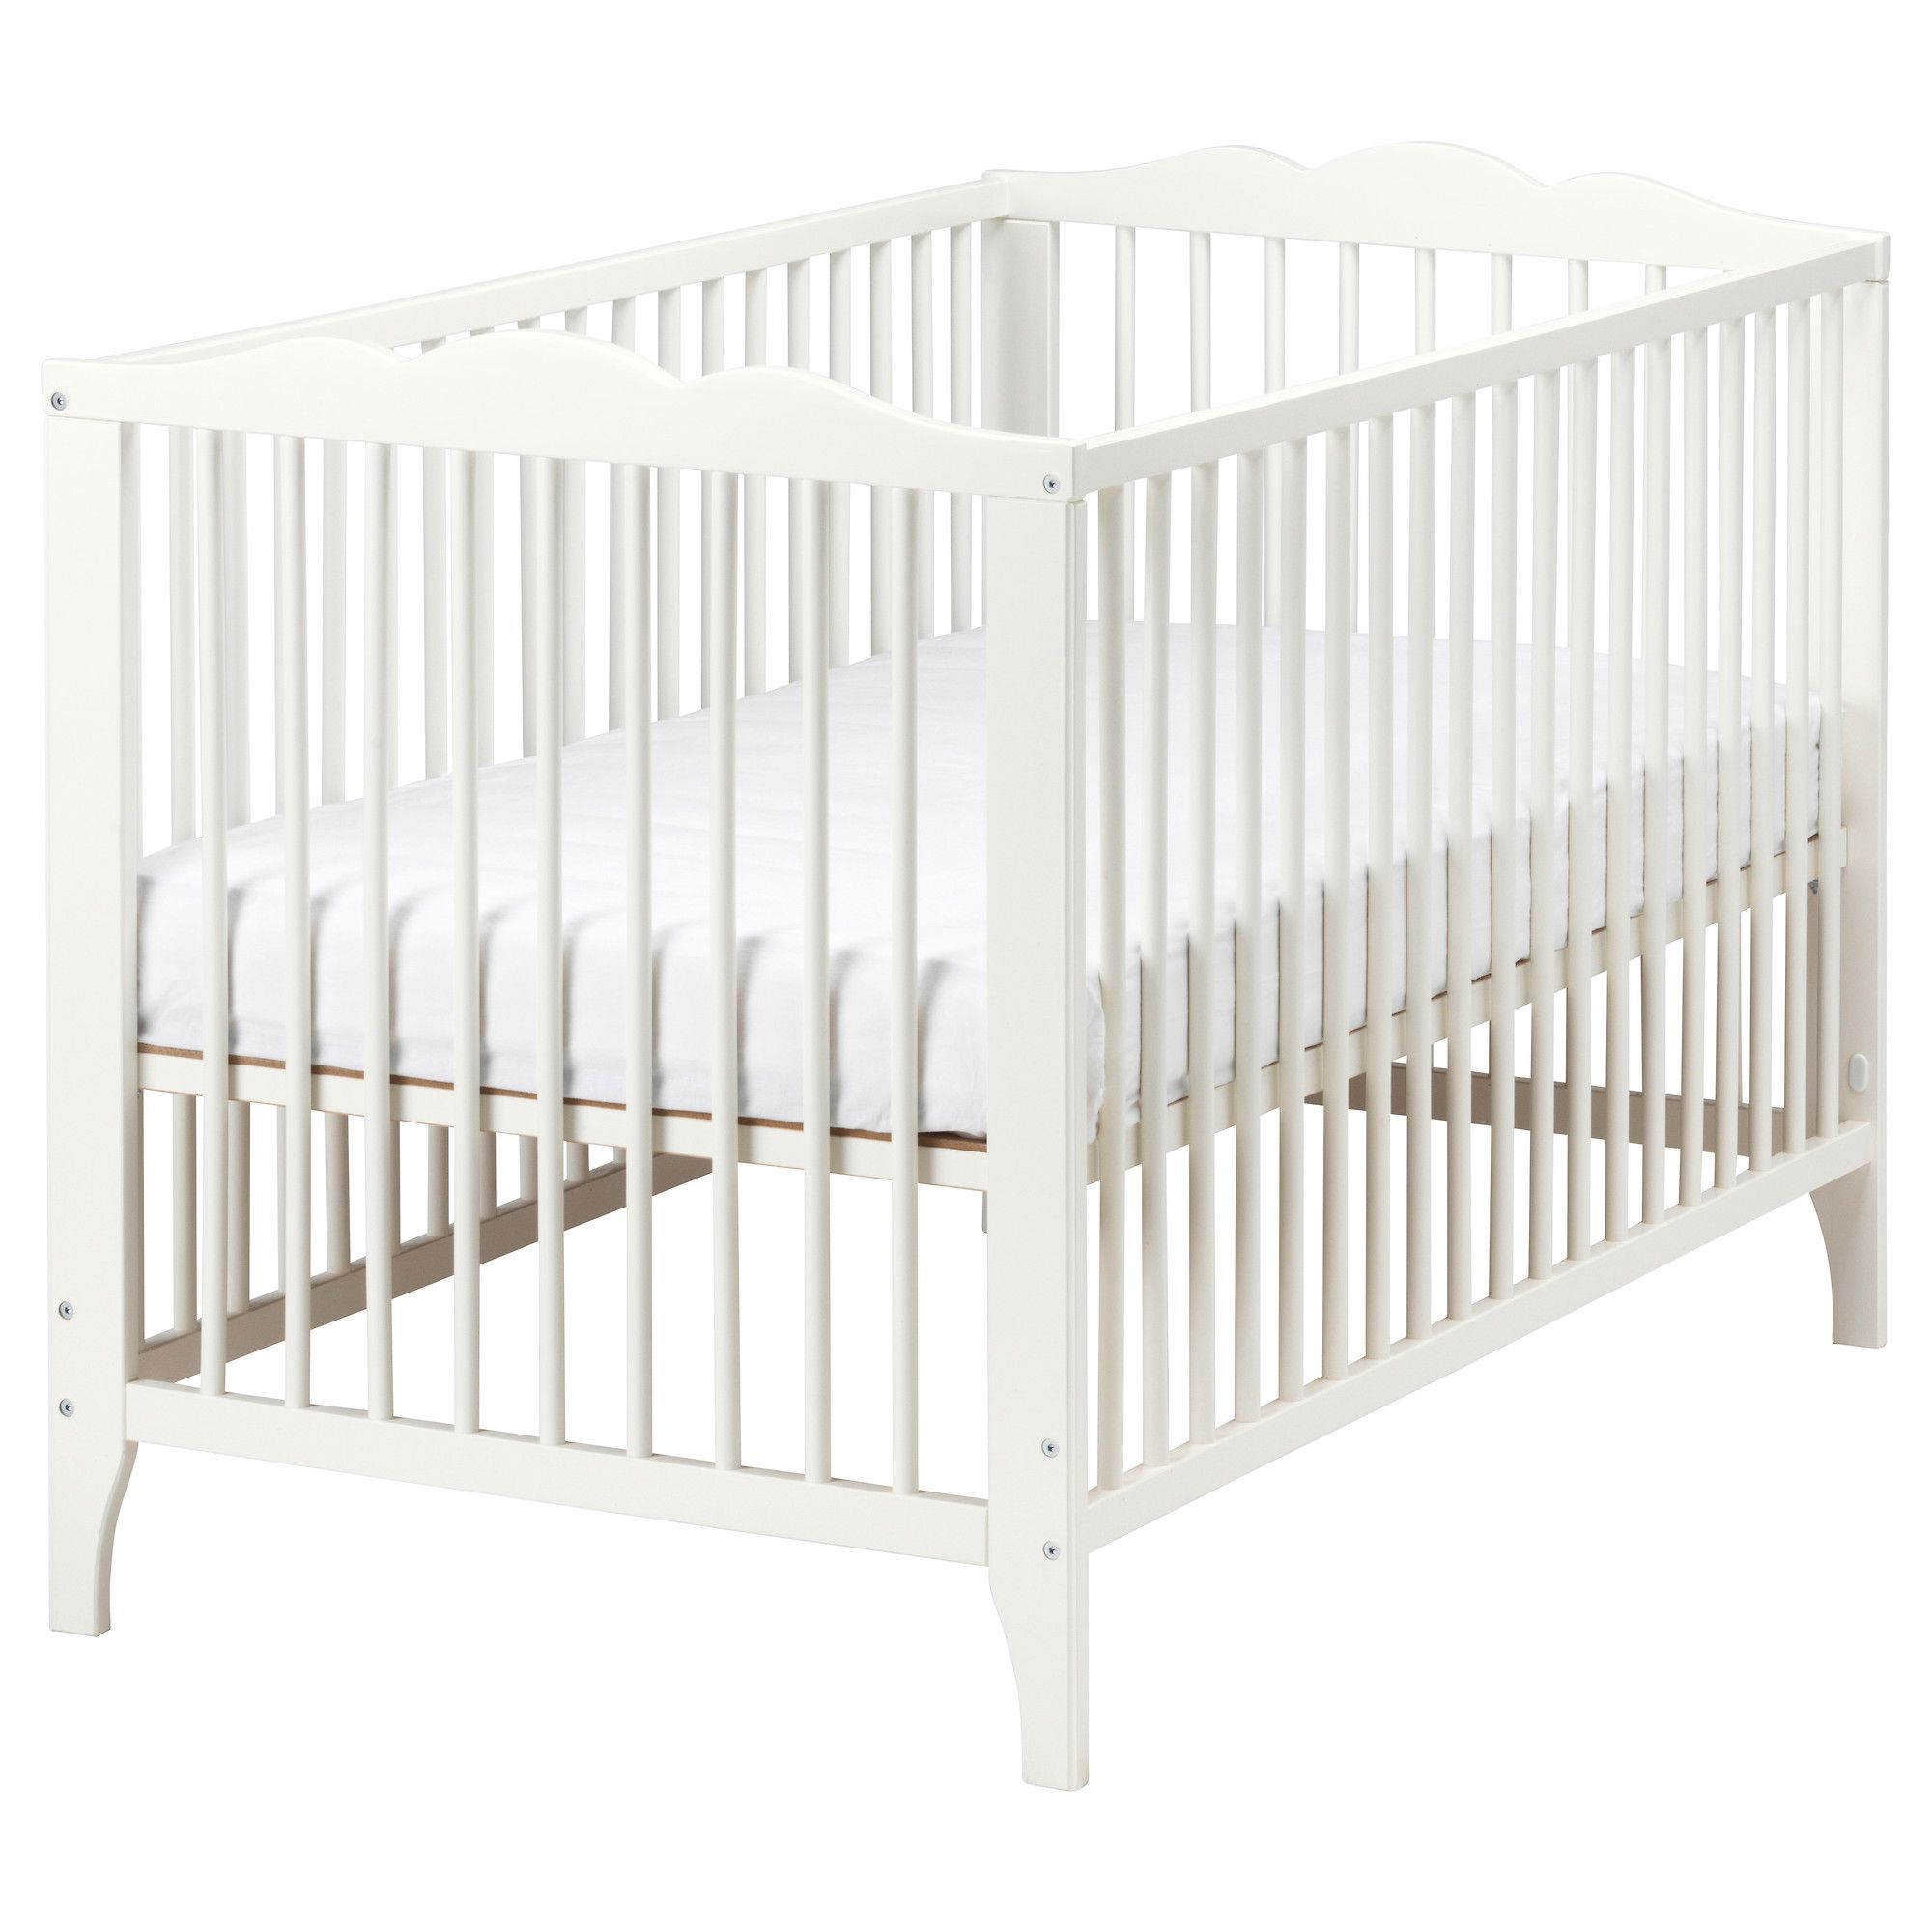 Hensvik Crib Ikea 99 Mattress And Cover Sold Separately Converts To Toddler Bed As Well